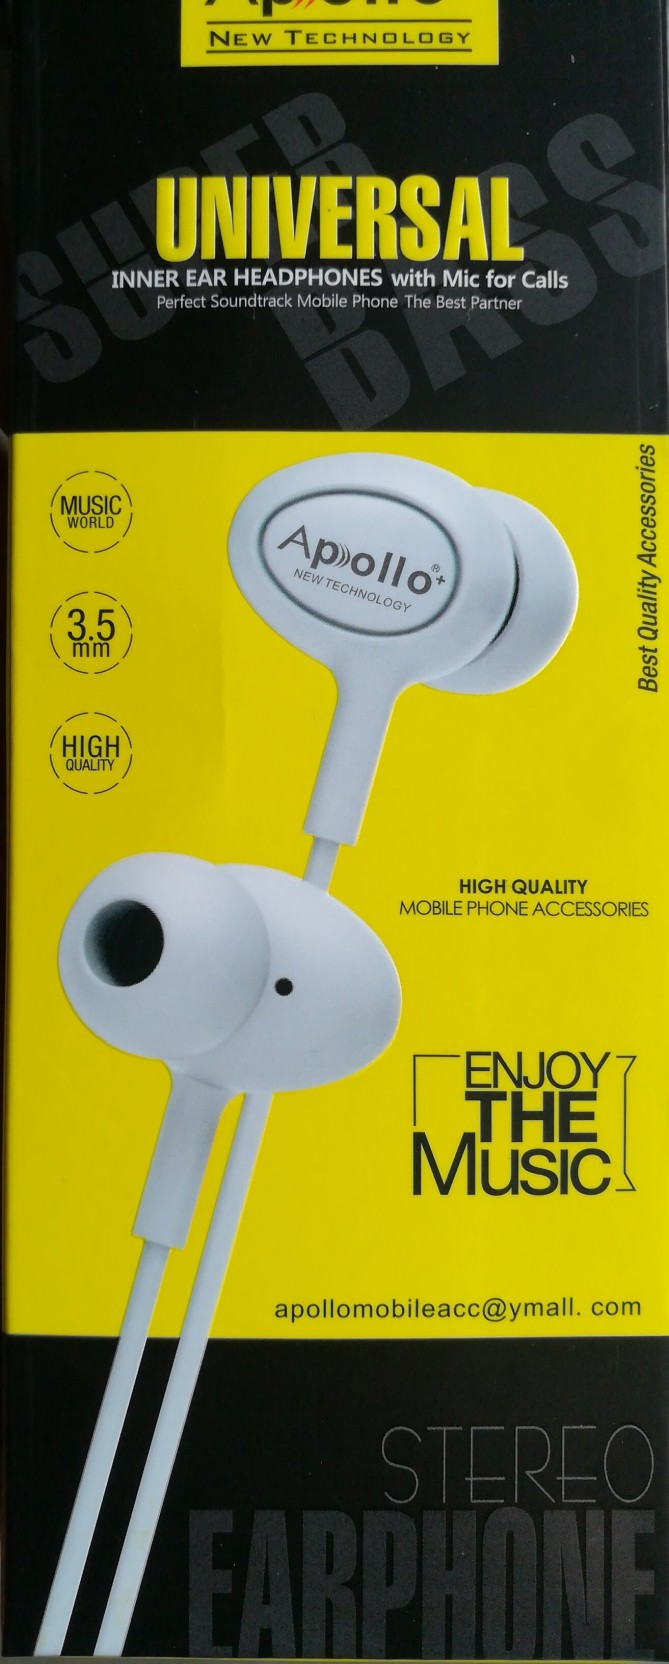 Apollo Plus Turbo Bass Stereo Dynamic Wired Headset With Mic Add To Cart